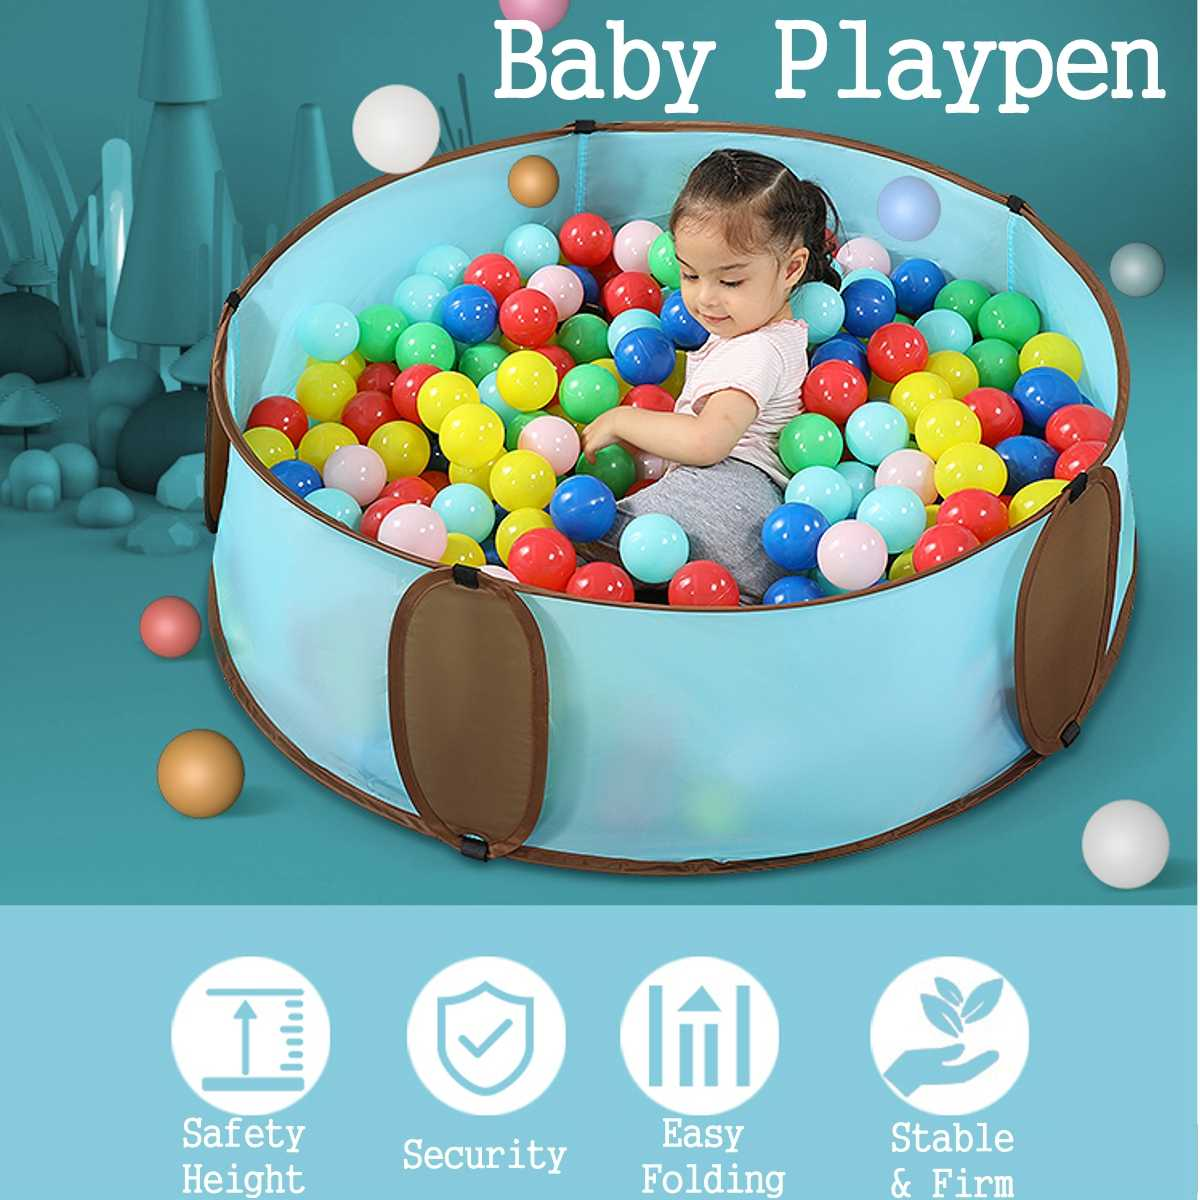 Safe Infants Playpen For Baby Fence Game Arena Indoor Ocean Balls Pool Ocean With 100pcs Ball Safe Play Mat For Kids Children